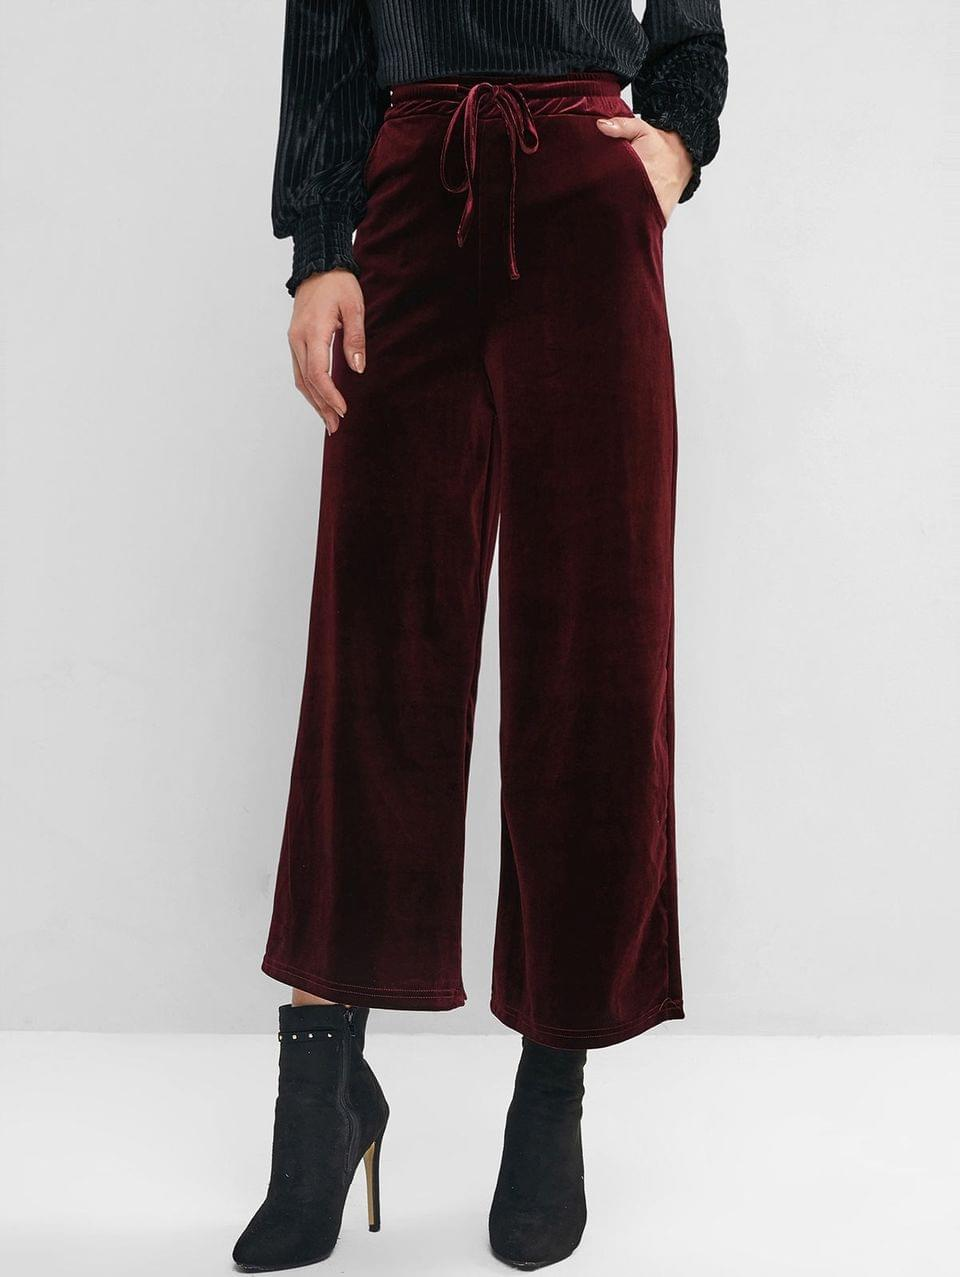 Women's Velvet Pocket Drawstring Wide Leg Pants - Red Wine Xl